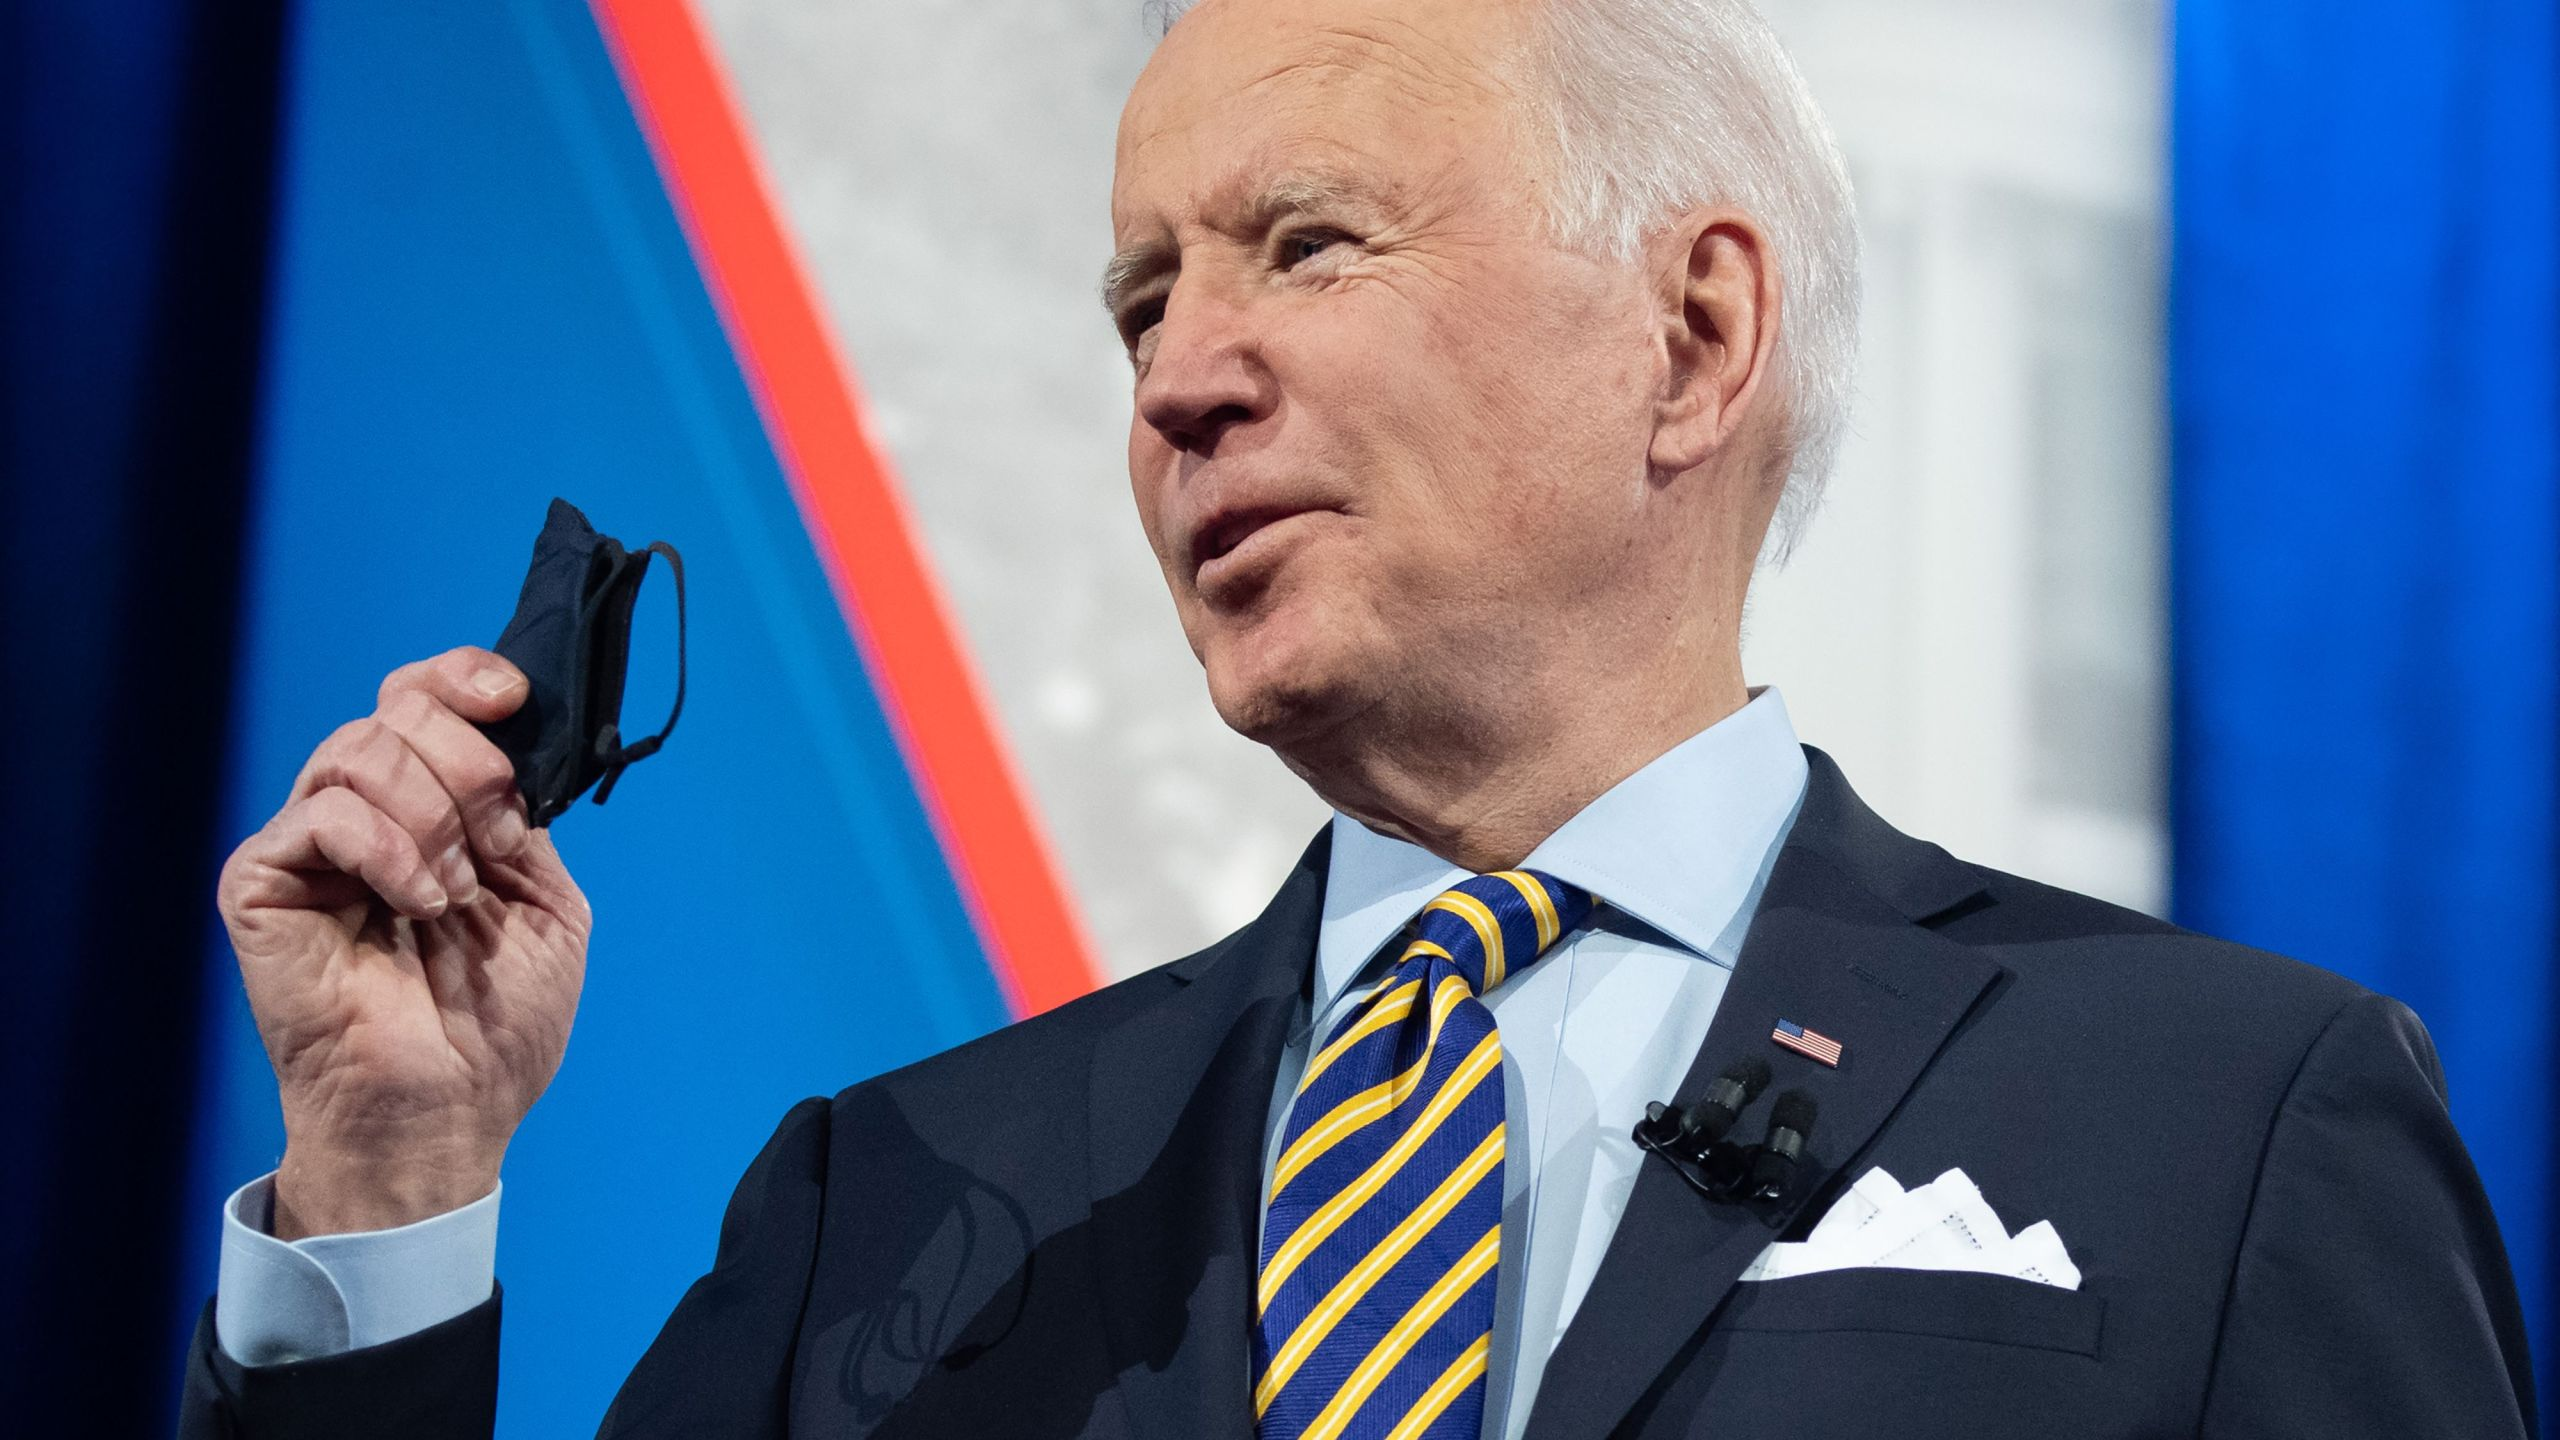 President Joe Biden holds a face mask as he participates in a CNN town hall at the Pabst Theater in Milwaukee, Wisconsin, on Feb. 16, 2021. (Saul Loeb / AFP / Getty Images)